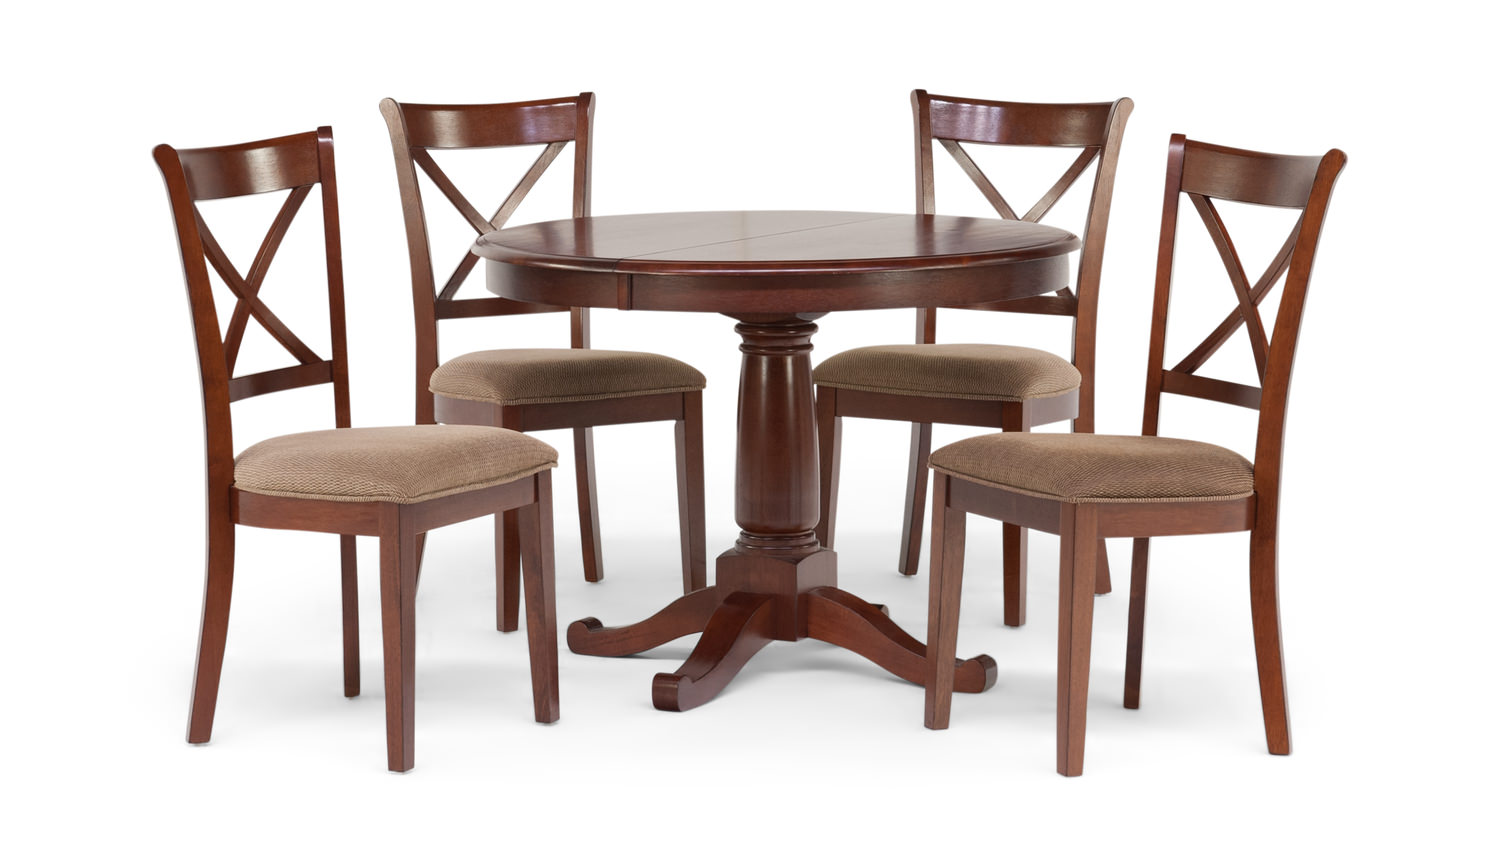 49206bea428c2 Venice Table With 4 Chairs by Furniture